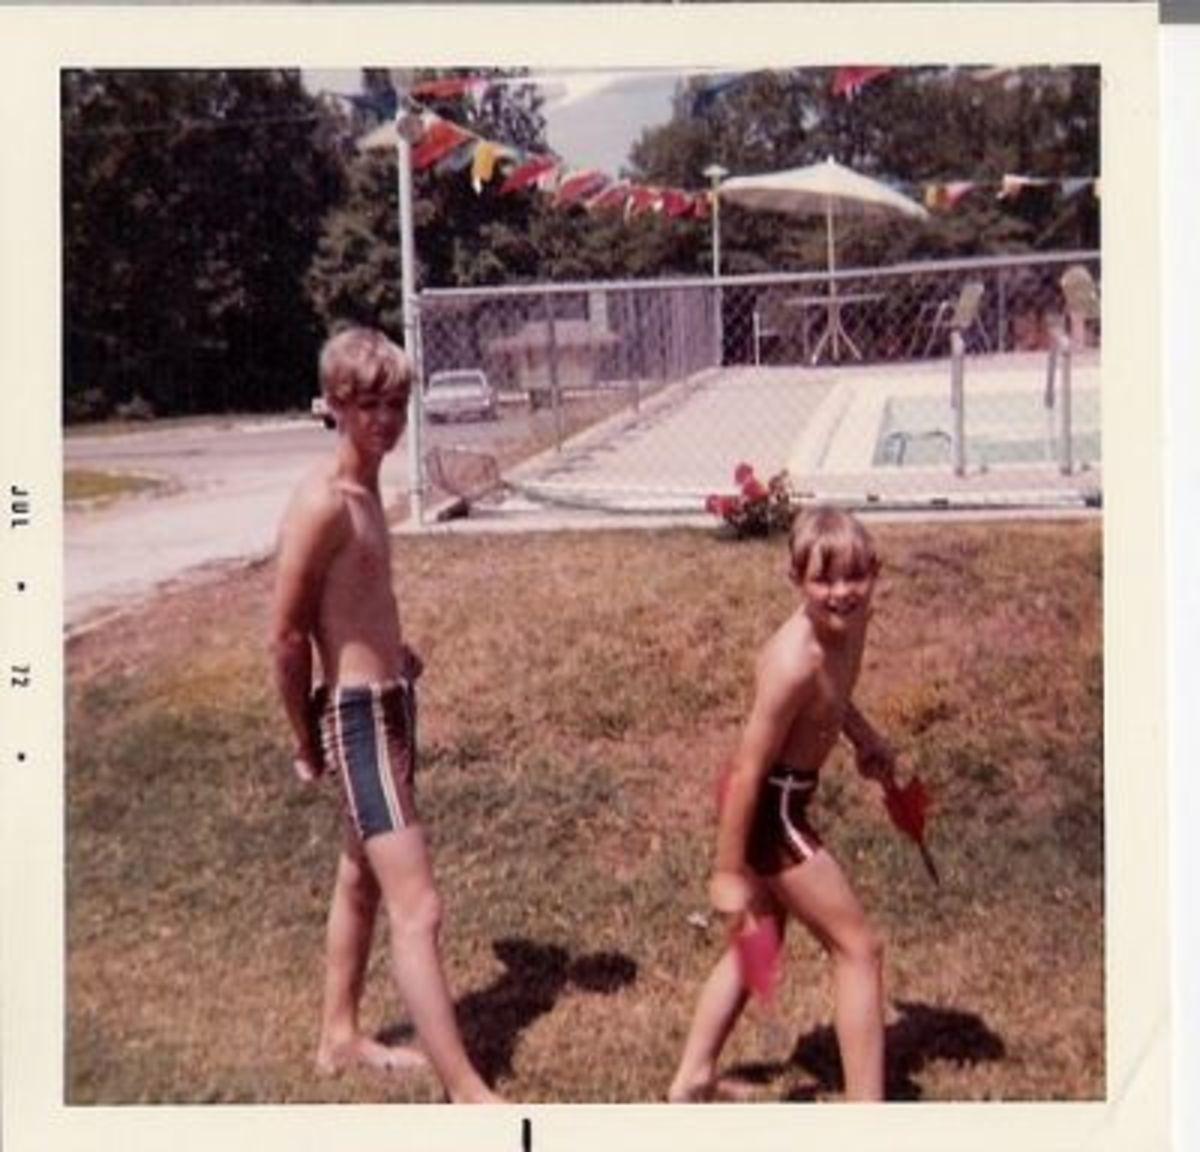 Two boys playing lawn darts in the 1970s